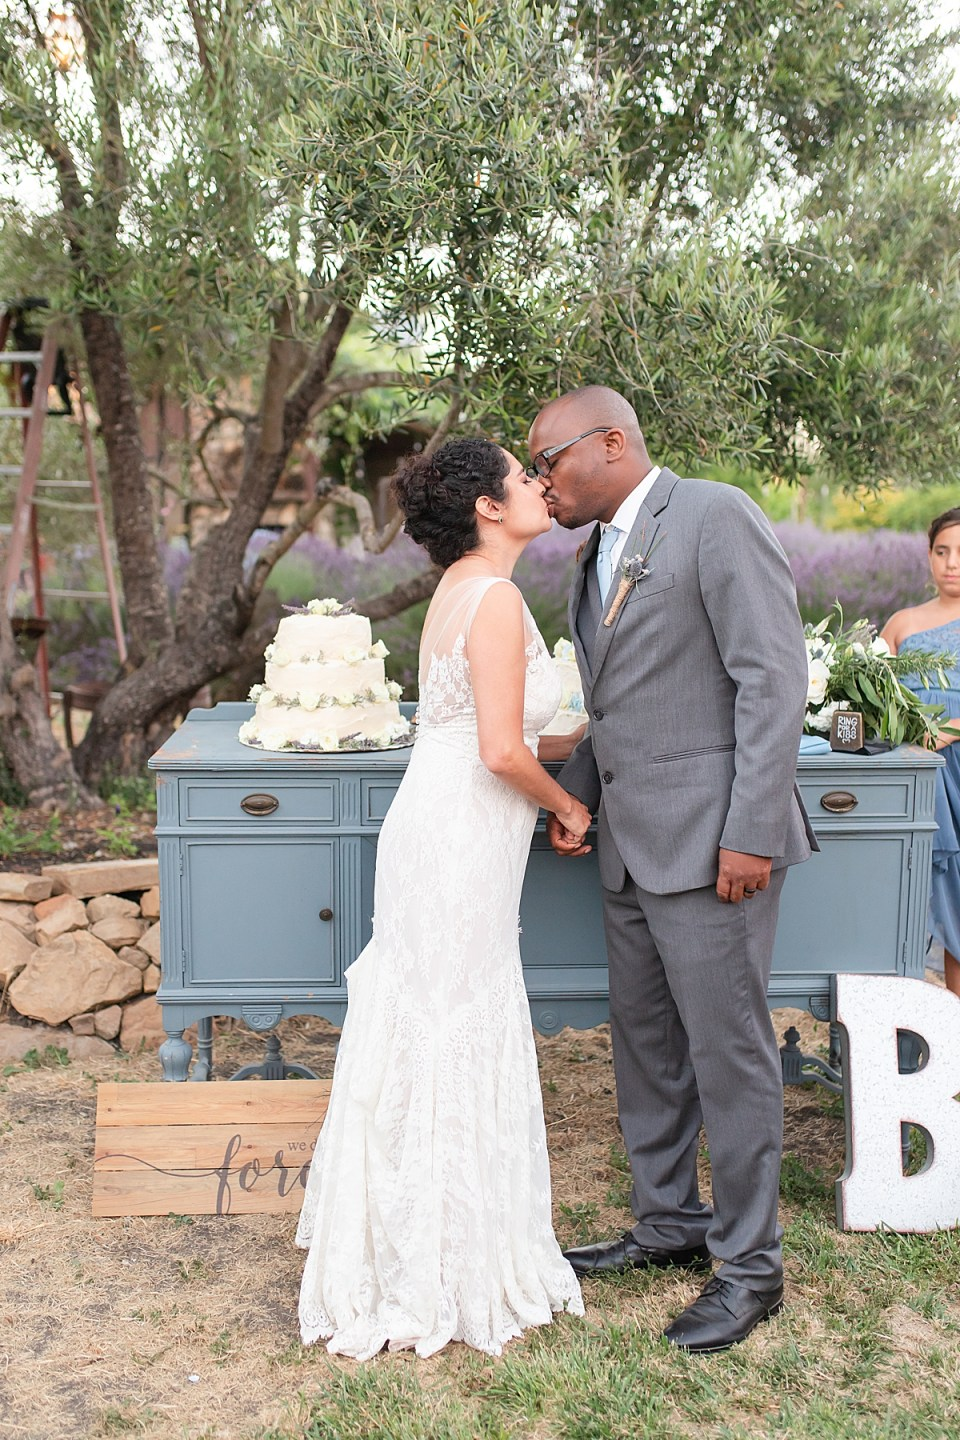 The couple sharing a kiss in front of their wedding cakes during their Rancho San Julian wedding